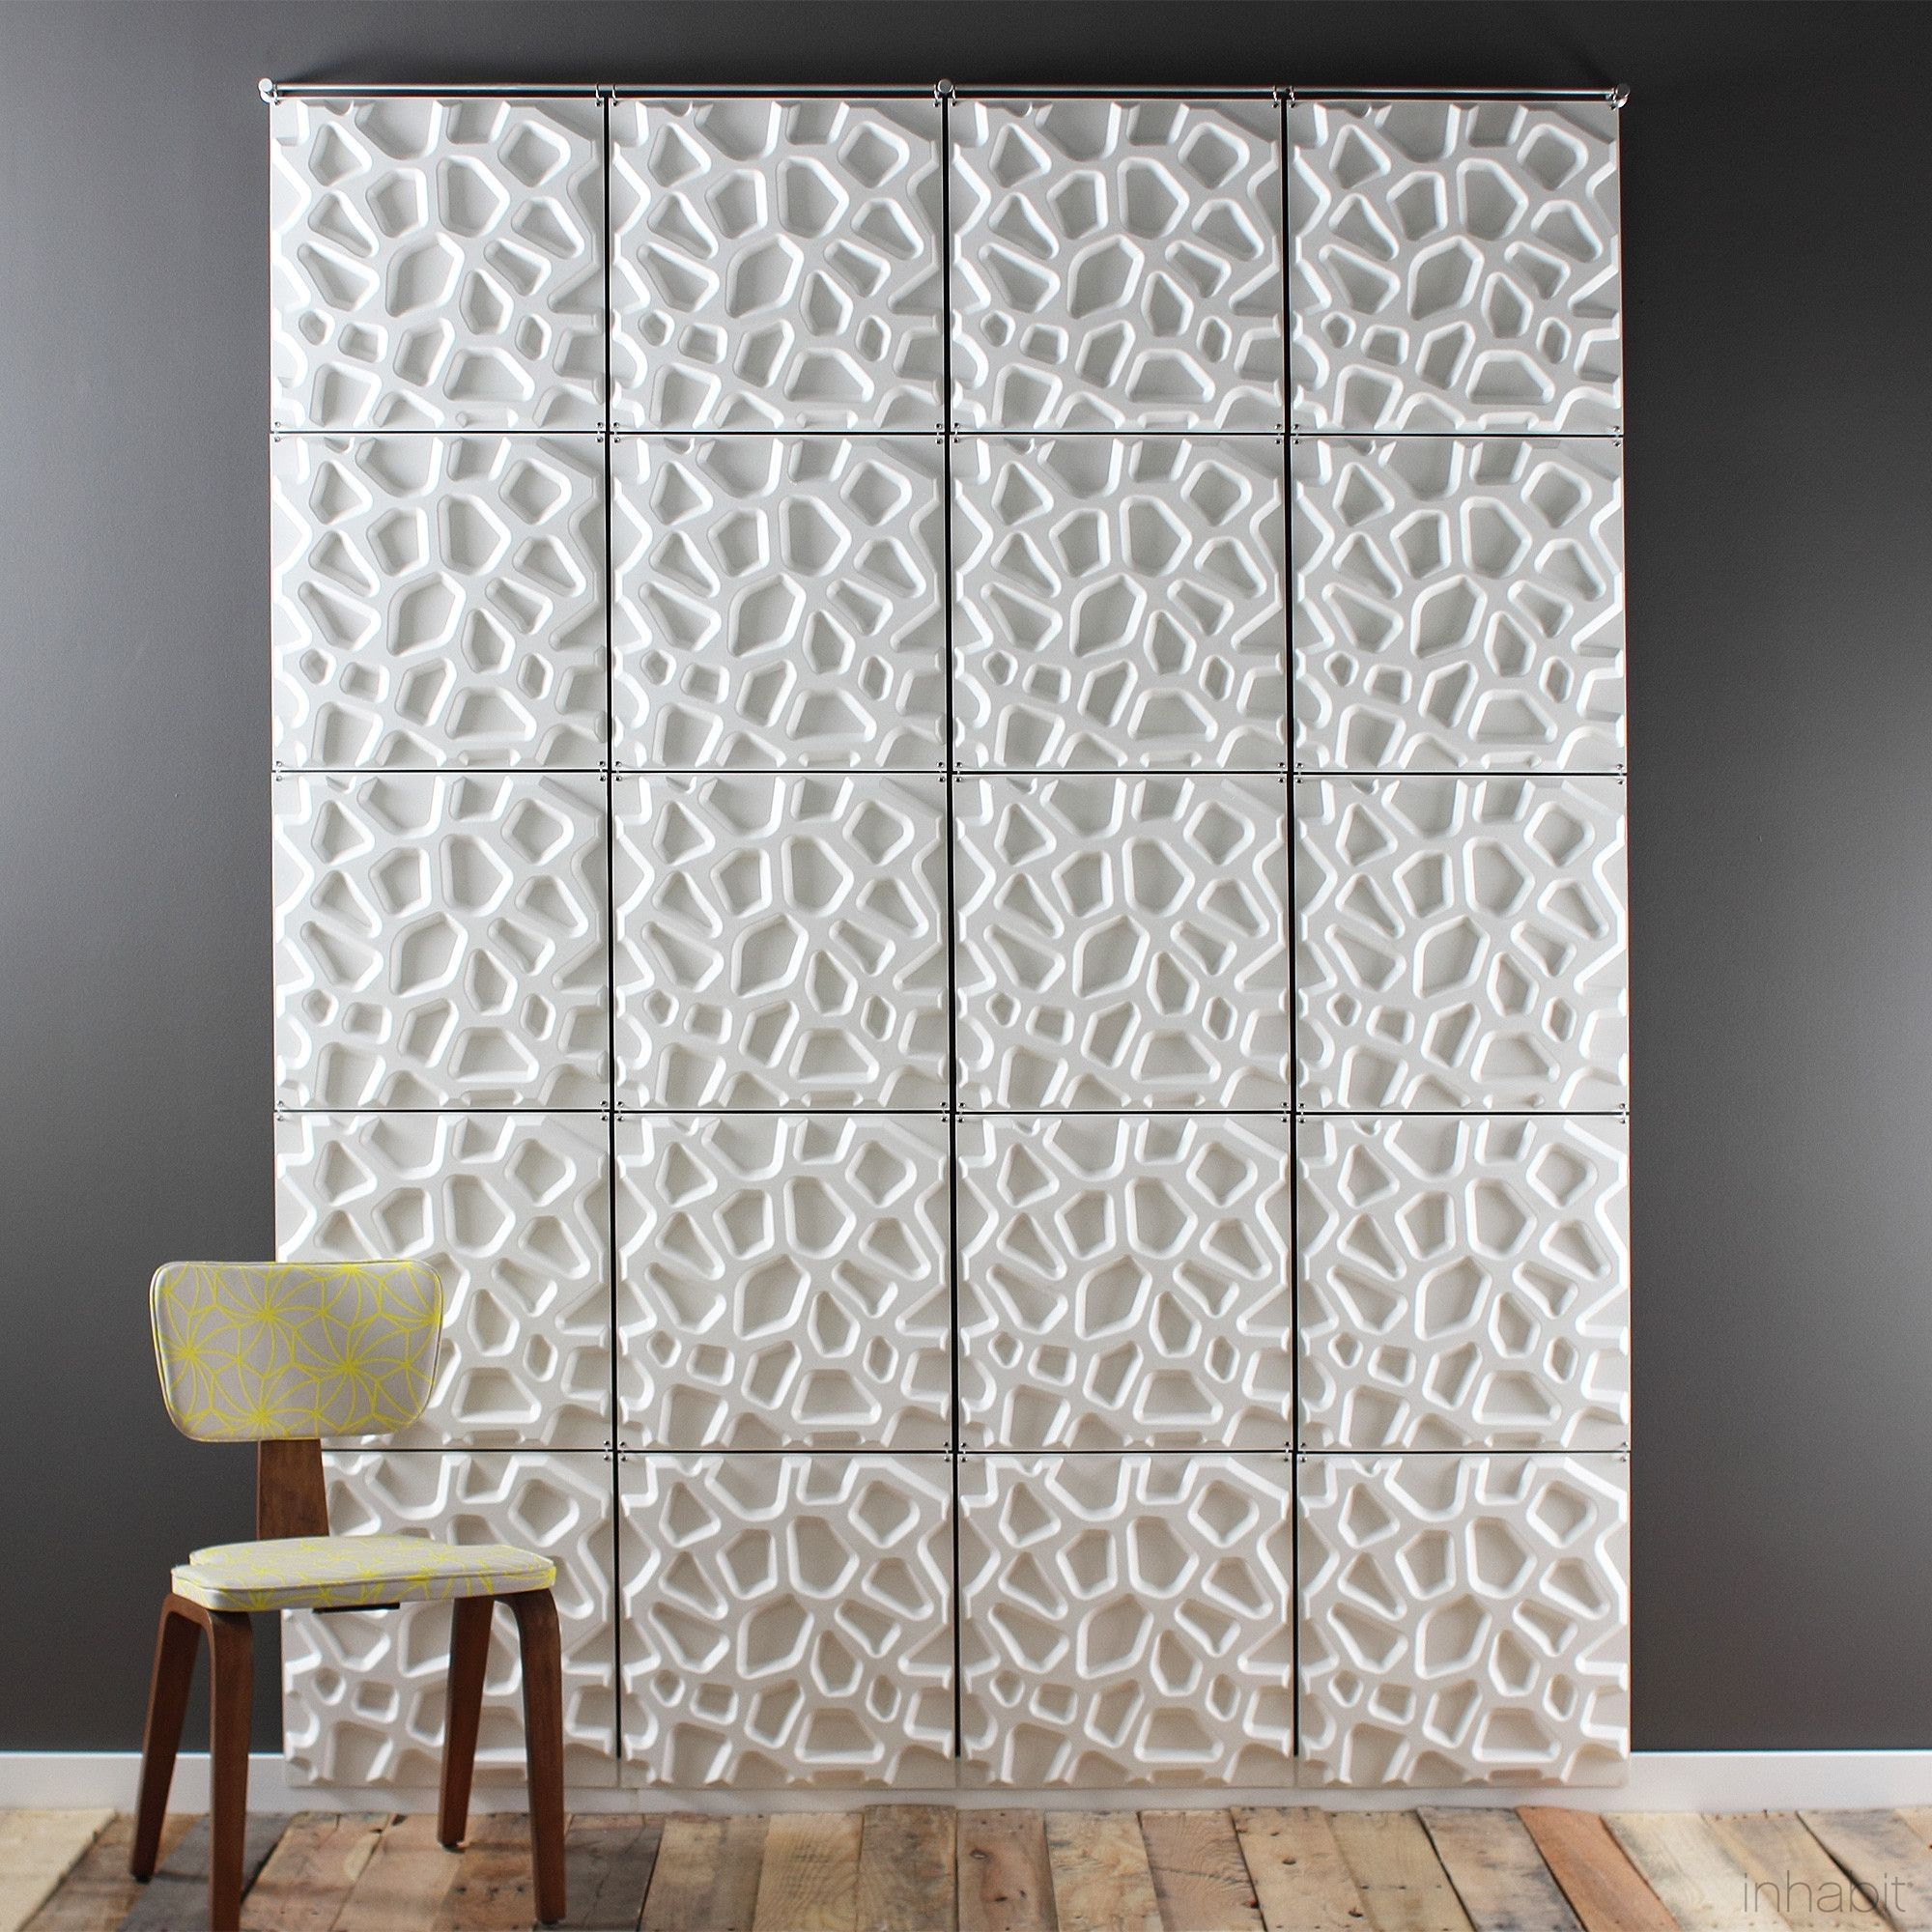 Modern Furnishings | 3D Wall Panels | Dimensional Walls | Hive Hanging Wall  Flats U2013 Inhabit Living